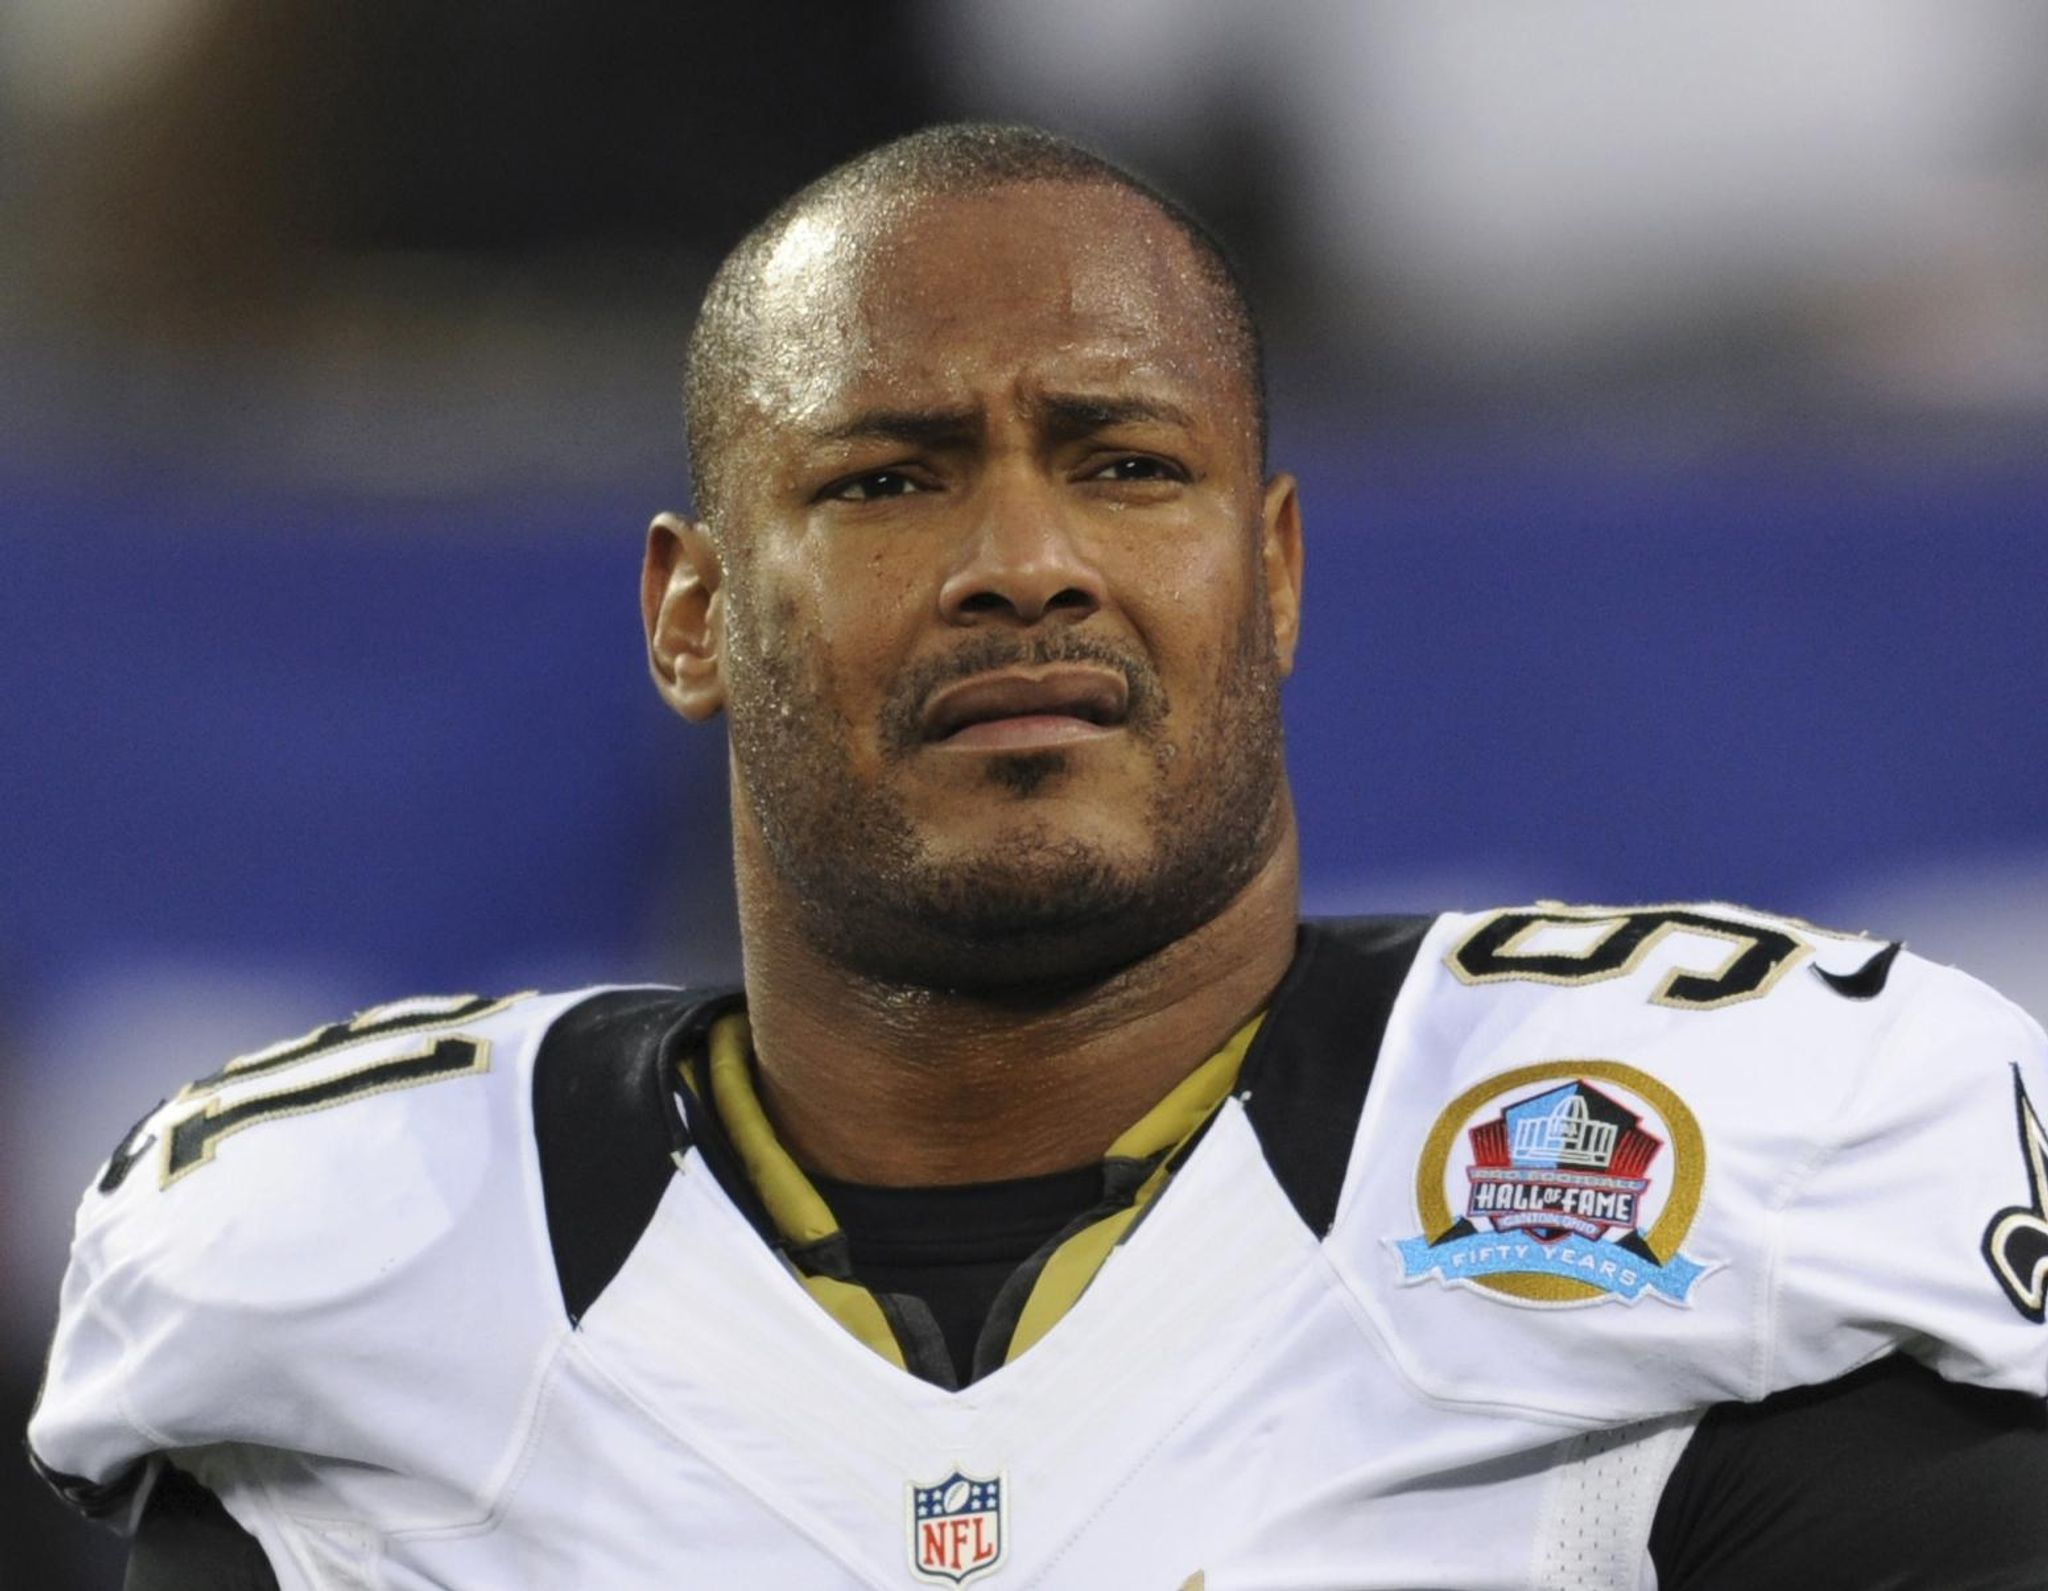 Saints_will_smith_shot_appeal_football_03850_s2048x1591